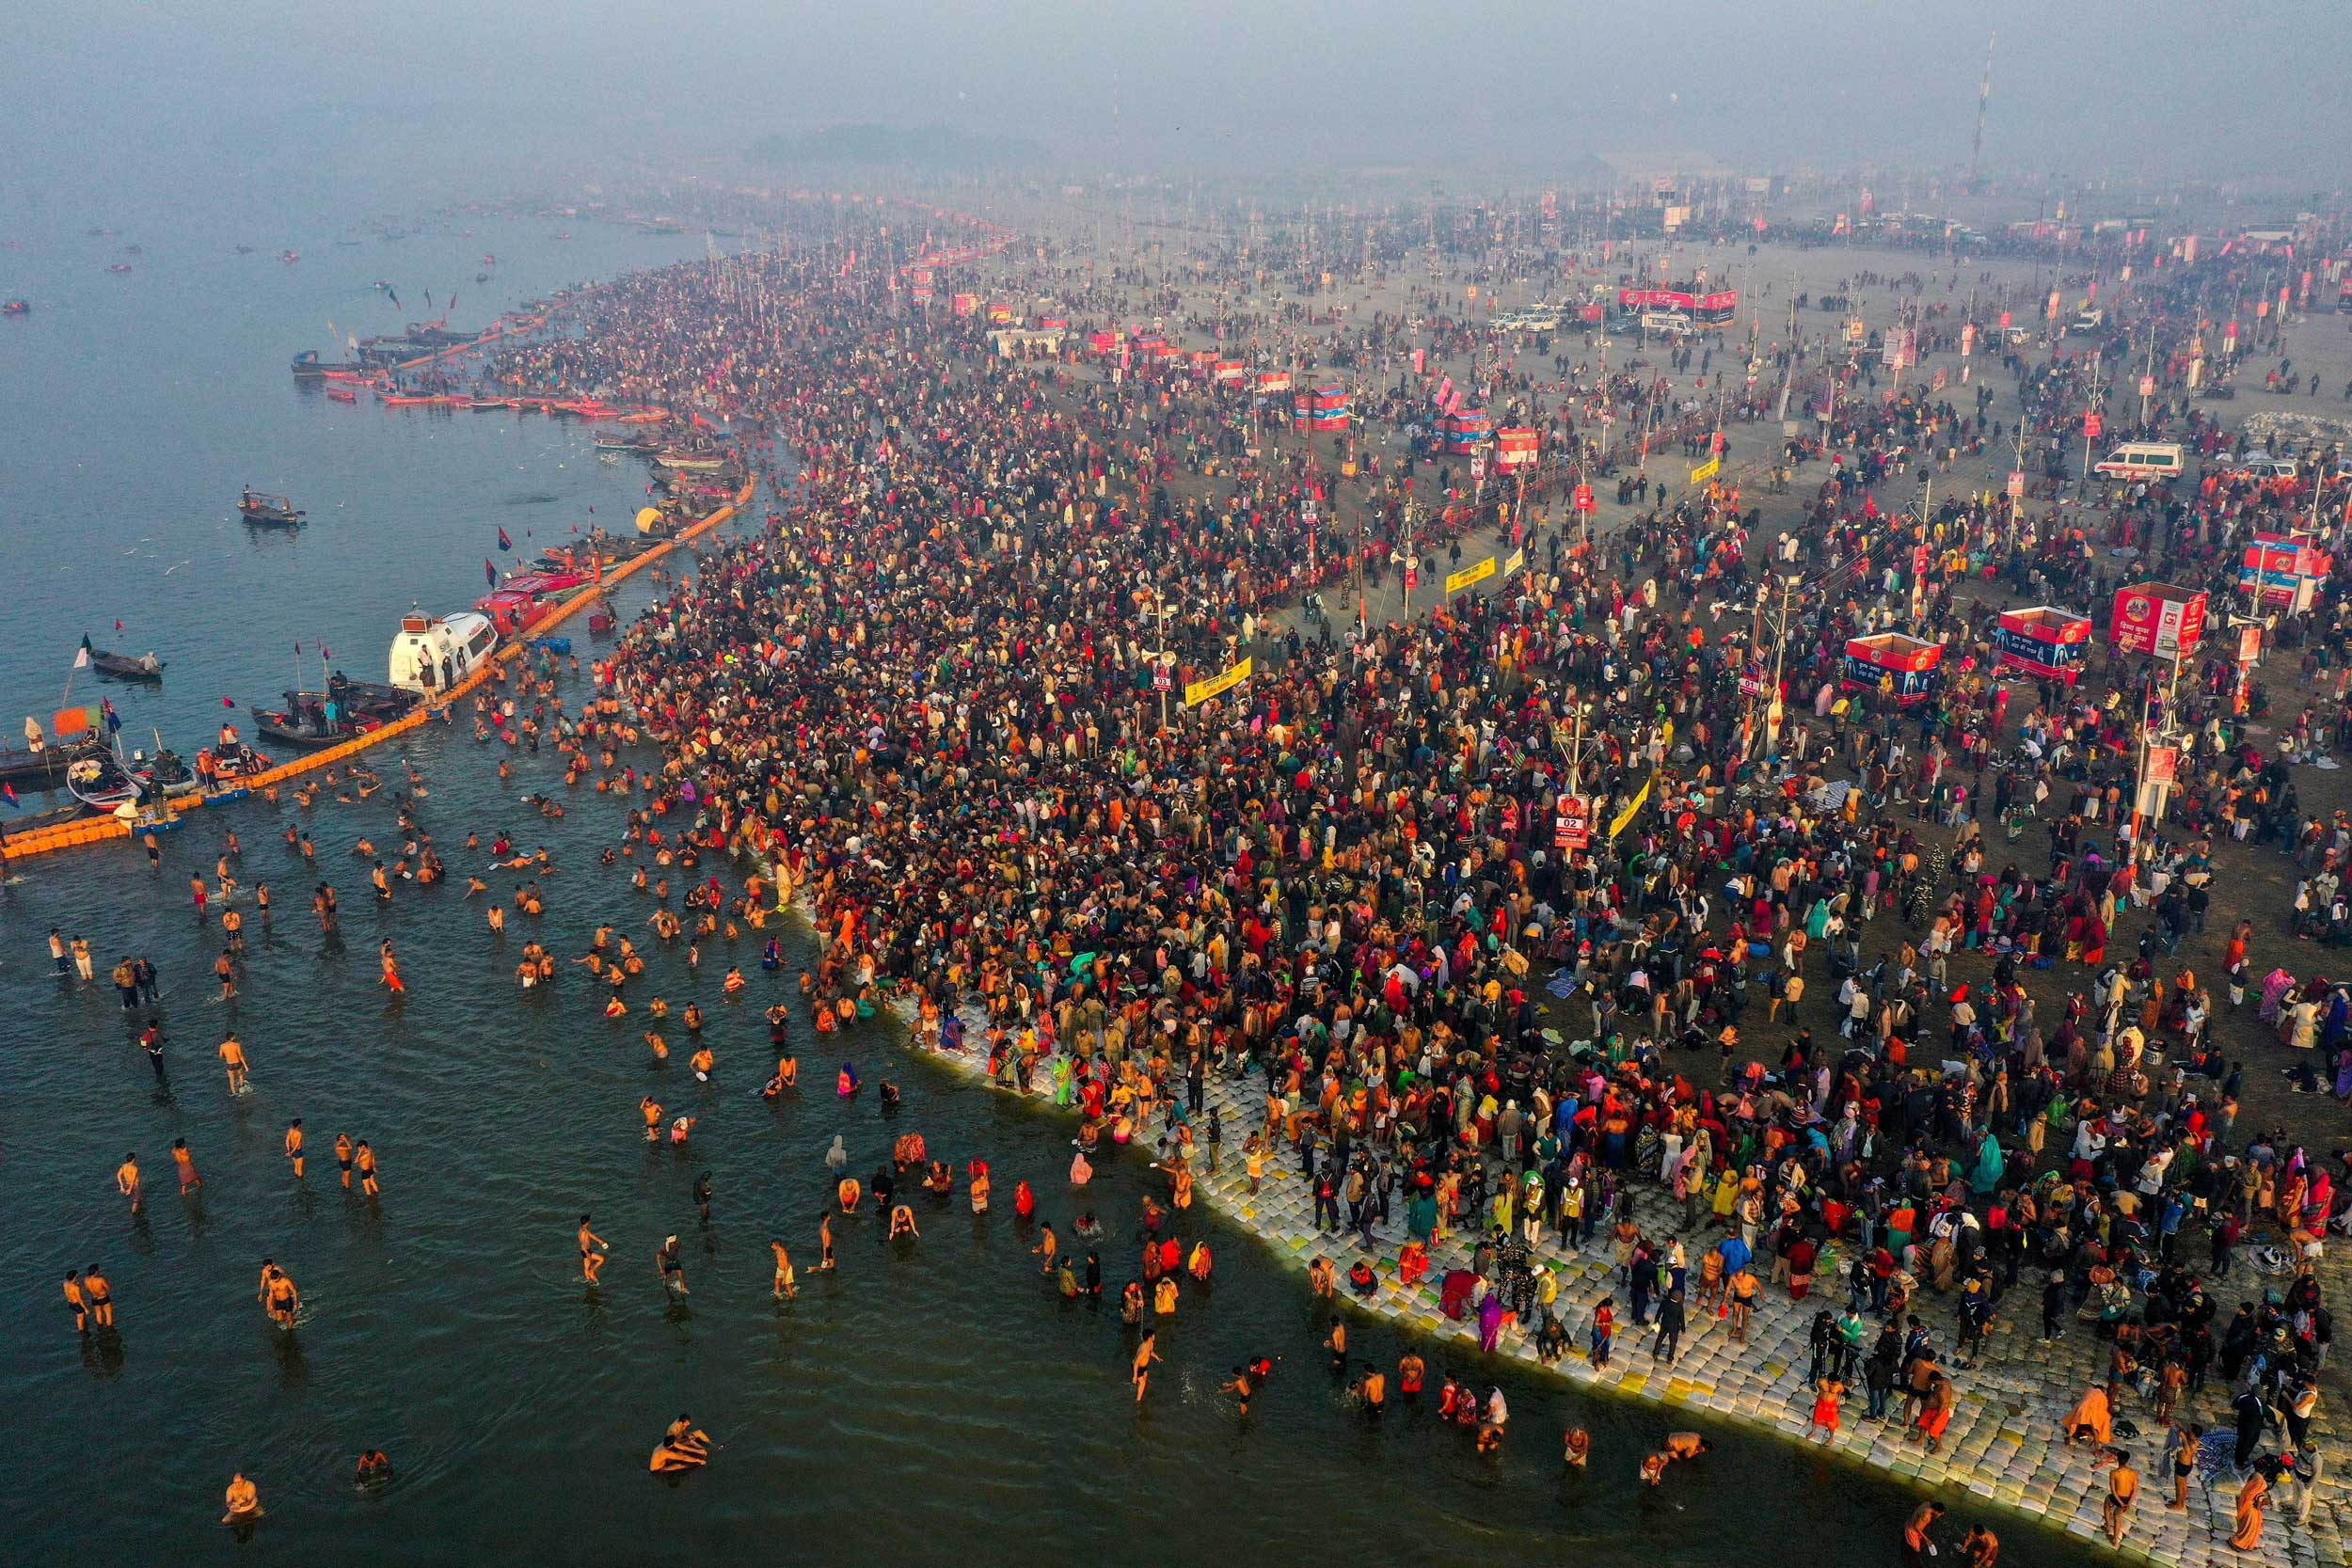 The Kumbh Mela is an opportunity to foster peace - Telegraph India